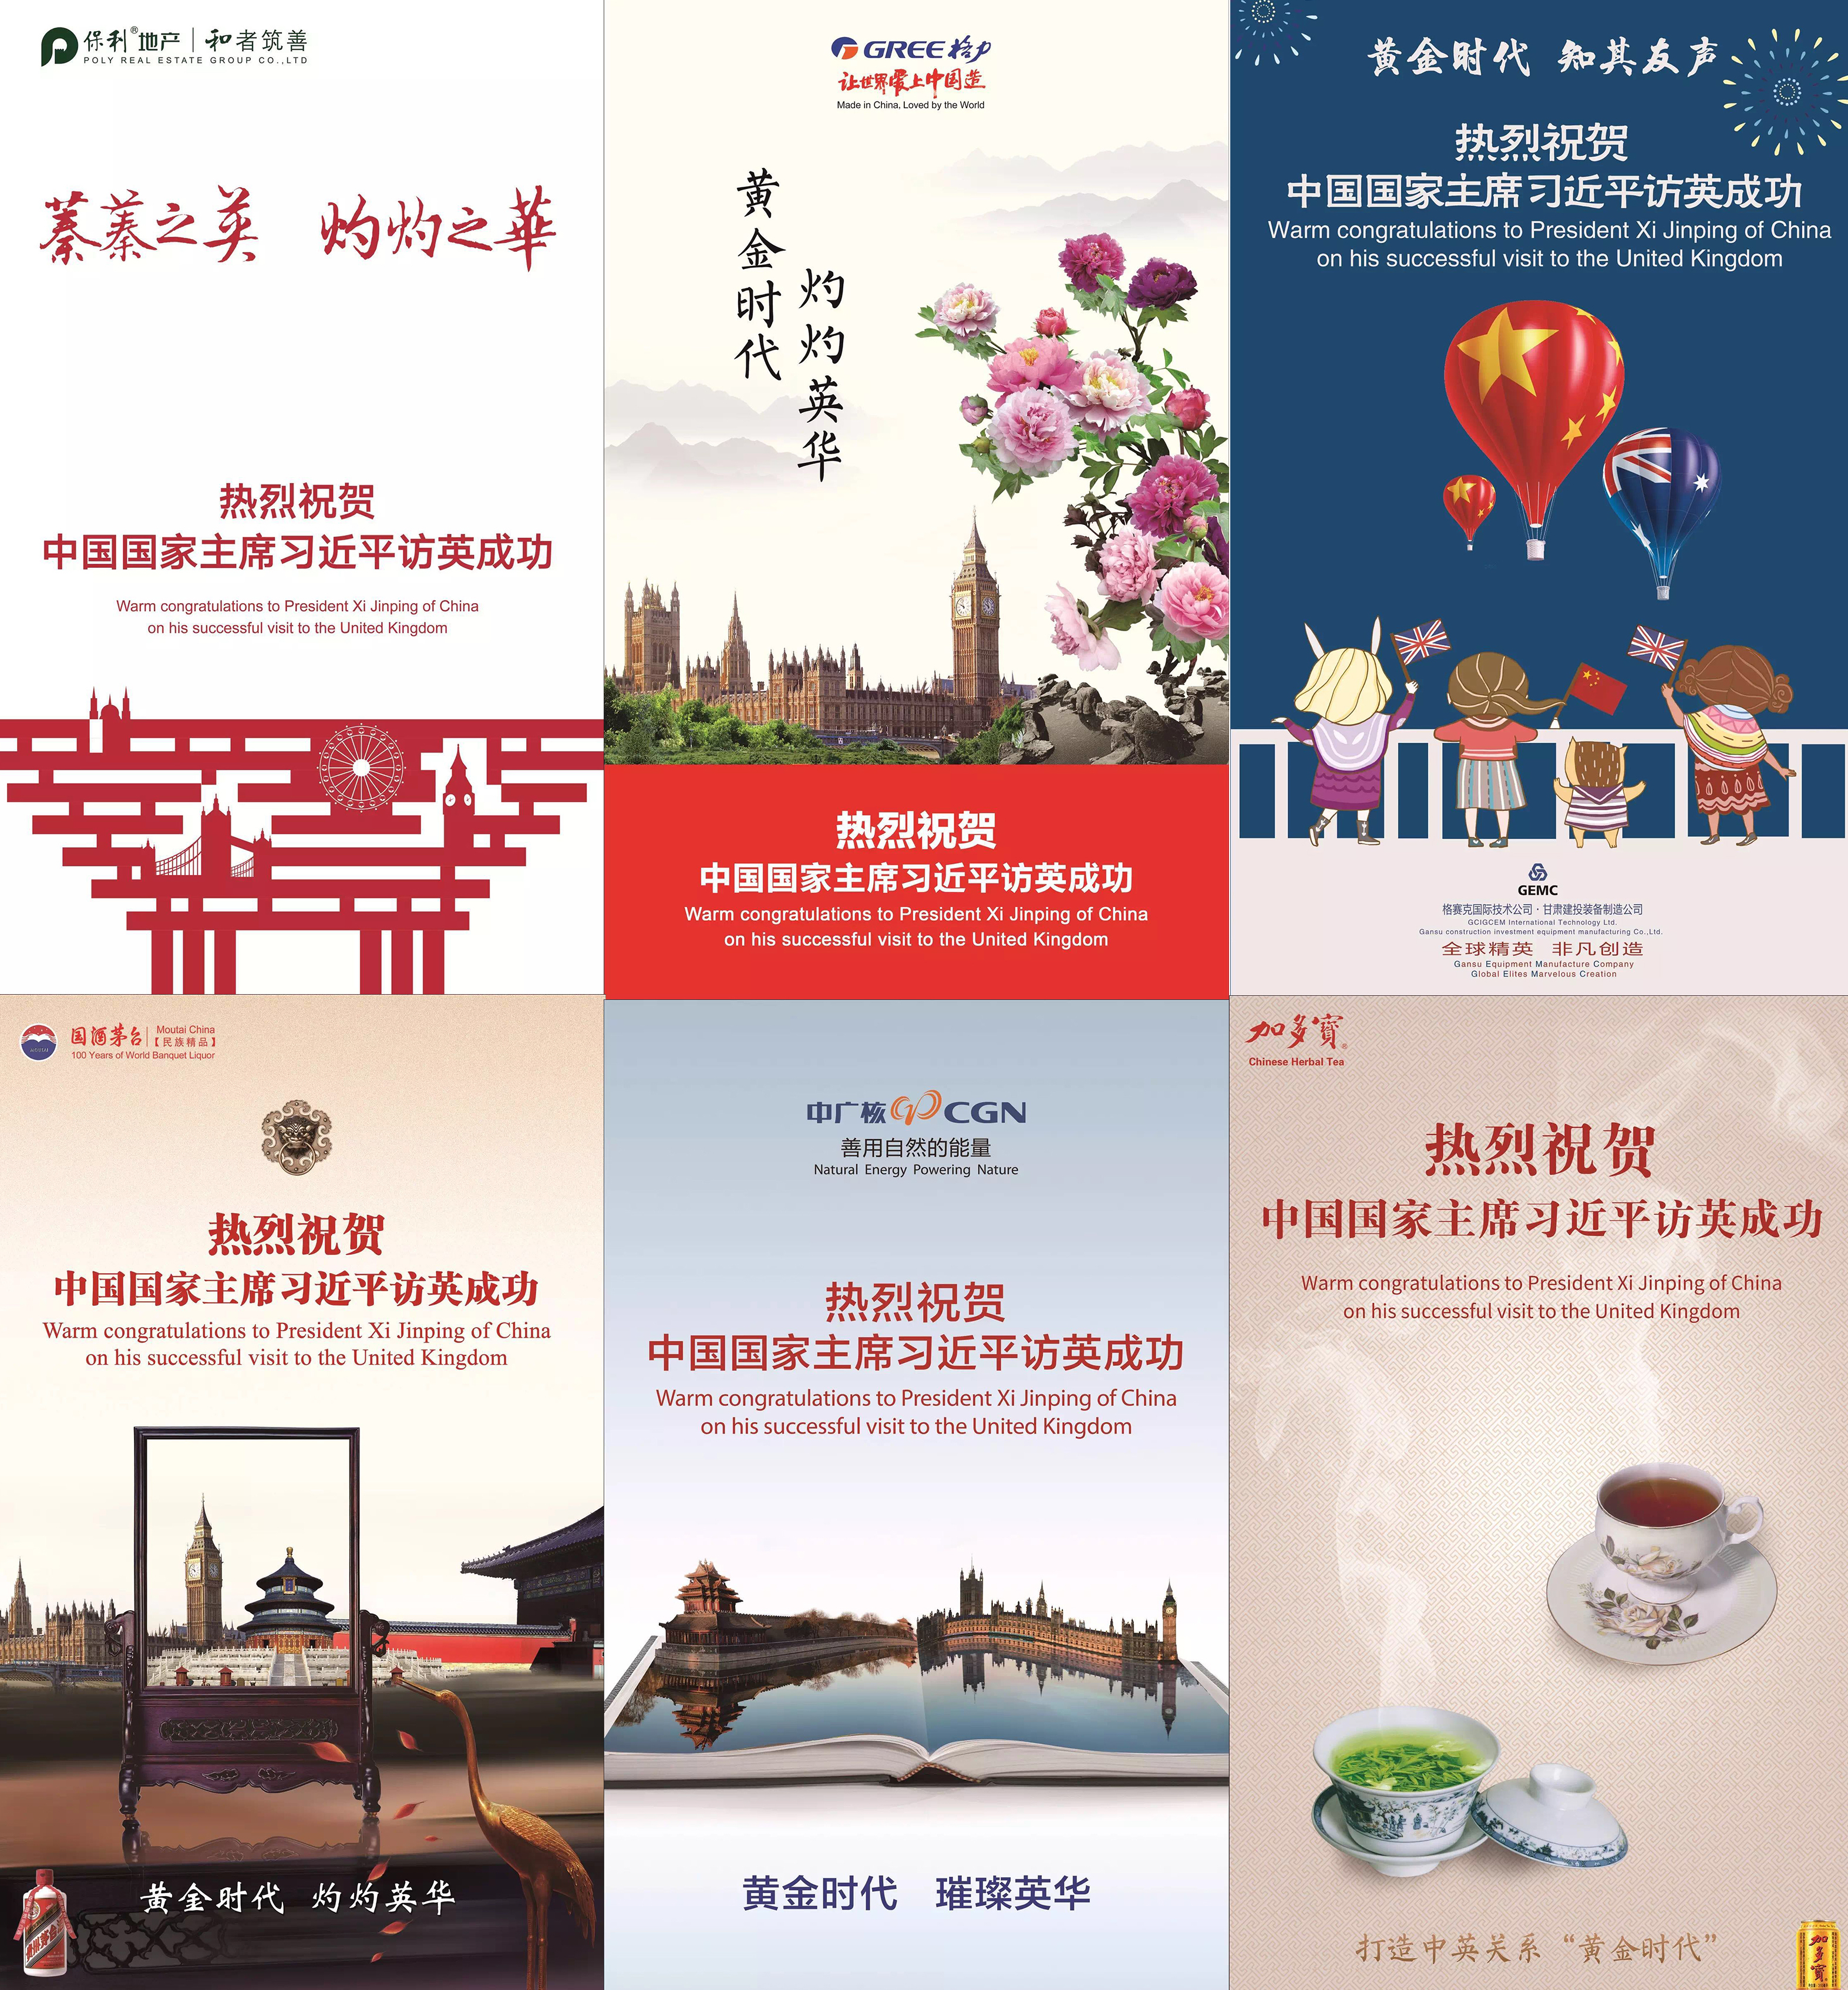 6 Chinese enterprises, state-owned or private, had their full-page advertisements on Financial Times. For them, stronger UK-China relations breed unprecedented commercial opportunities.